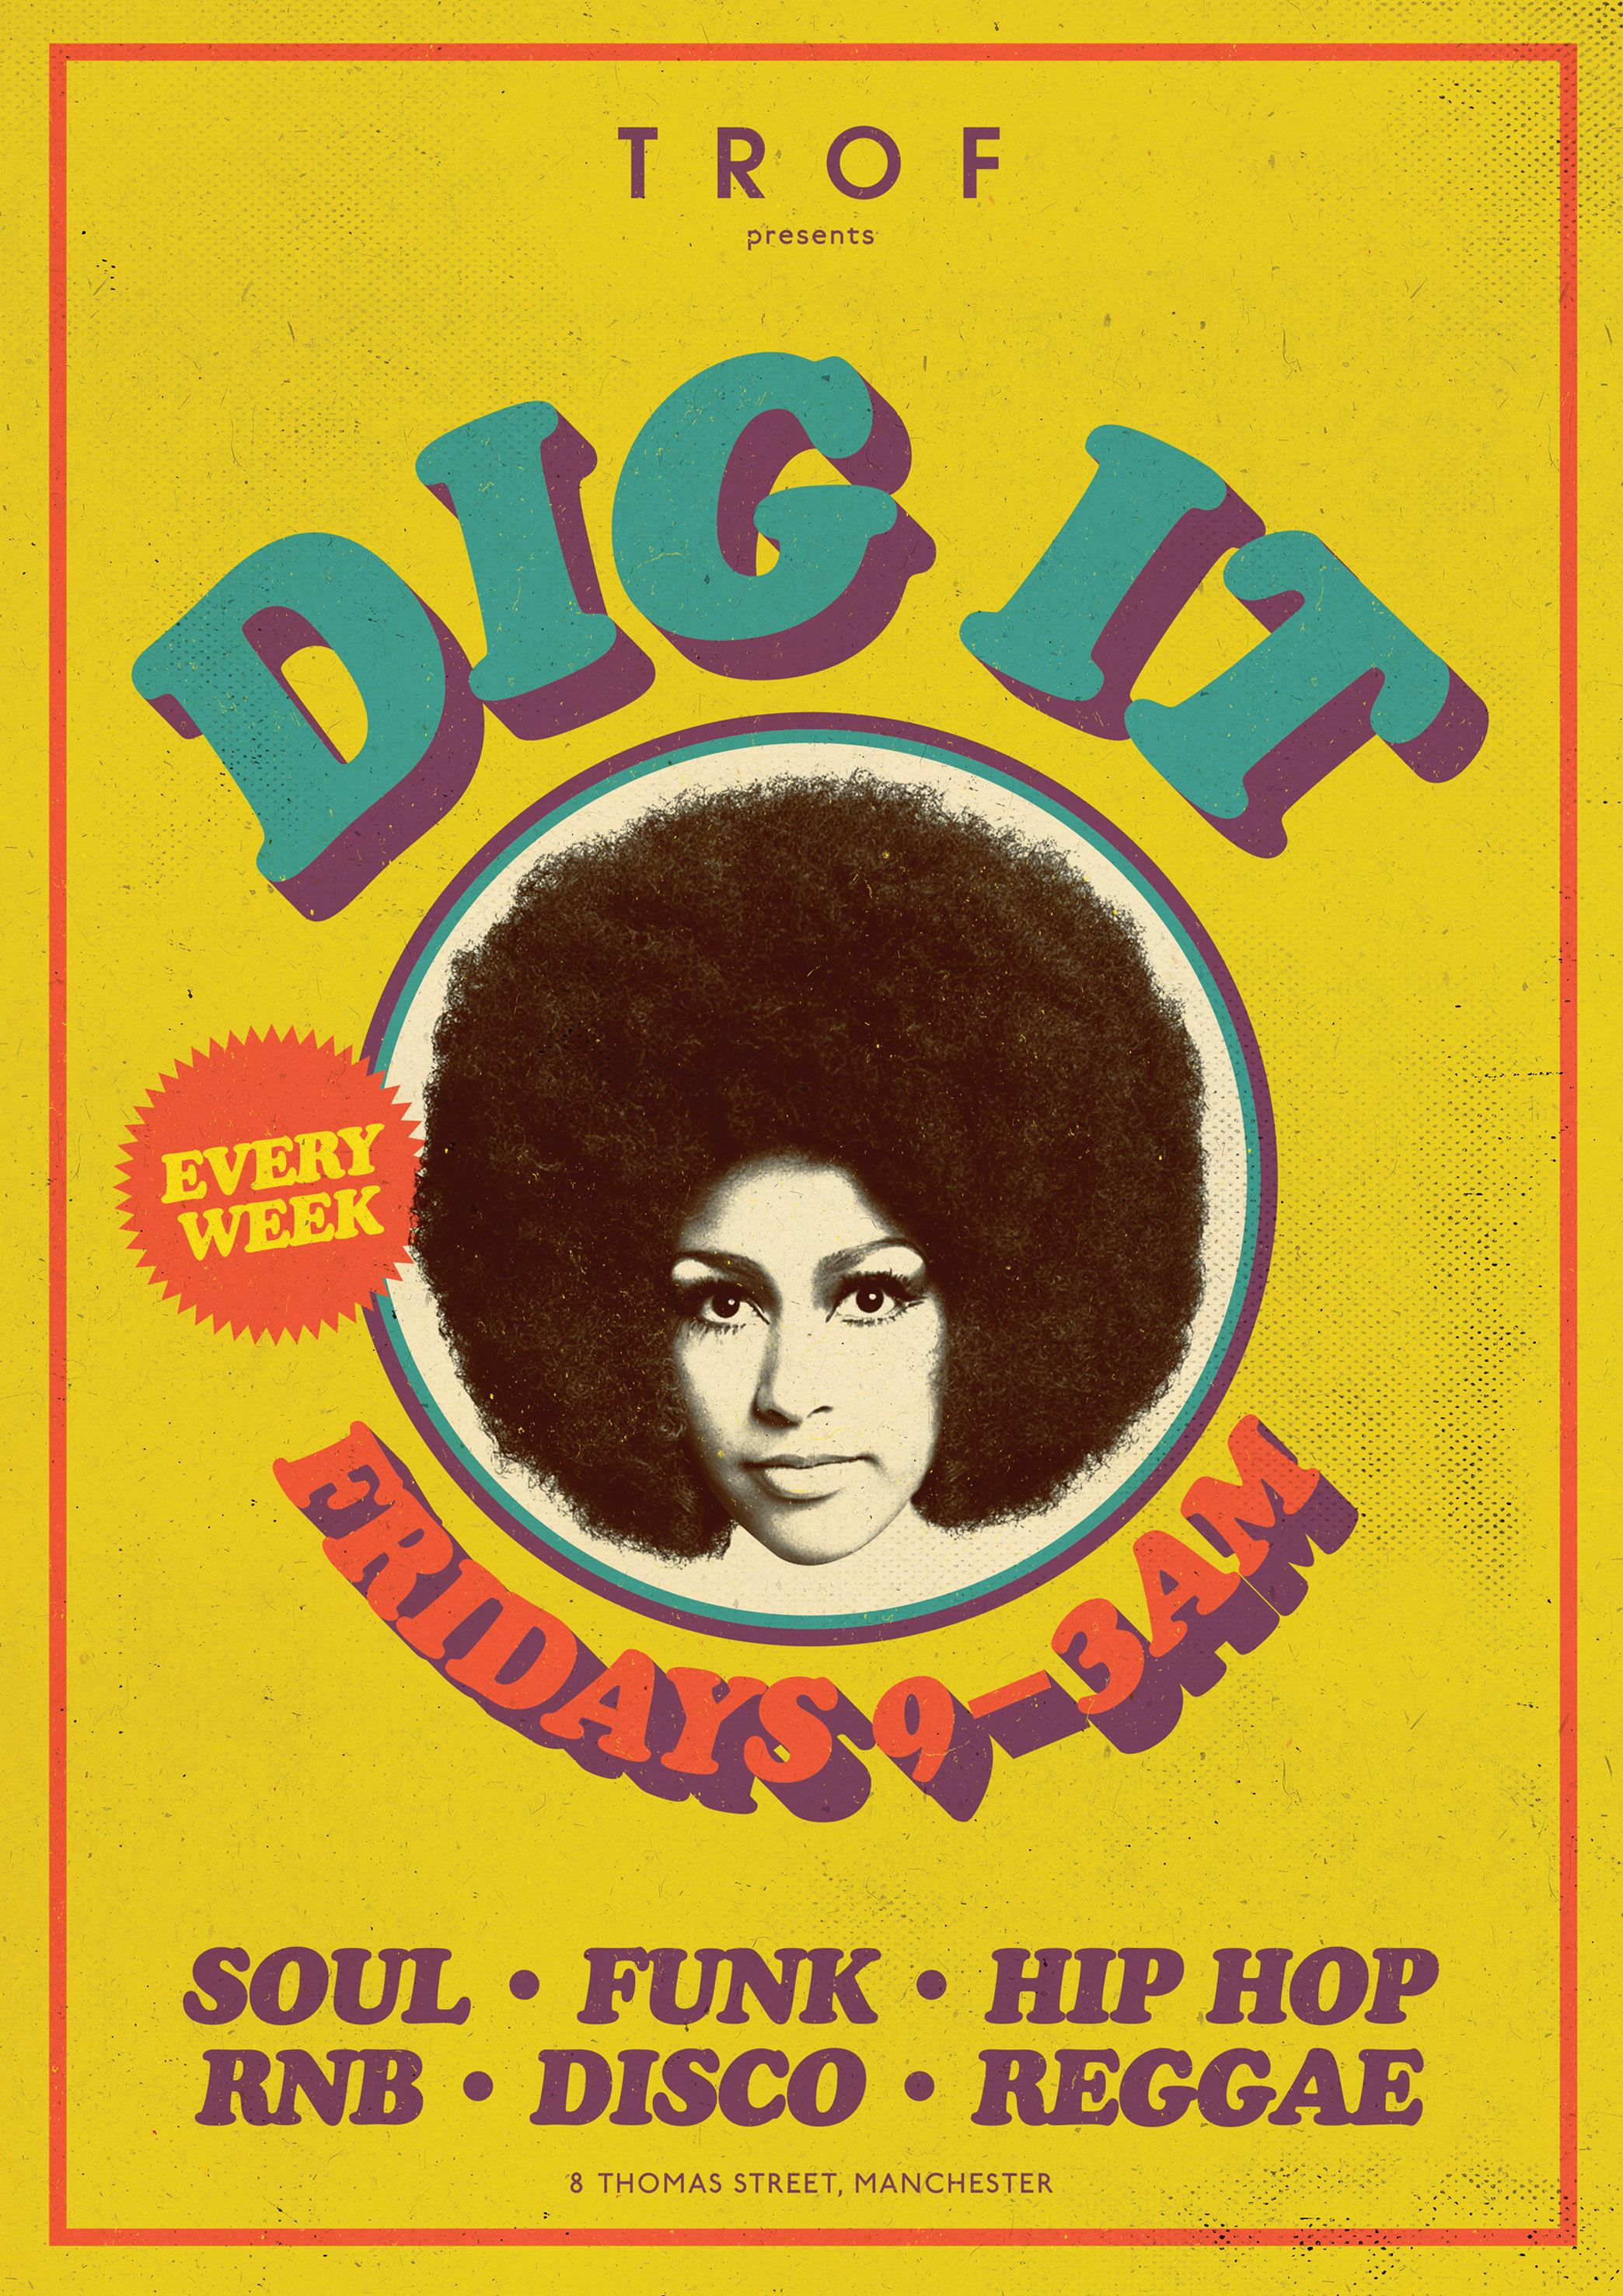 poster for DIG IT - Every Friday